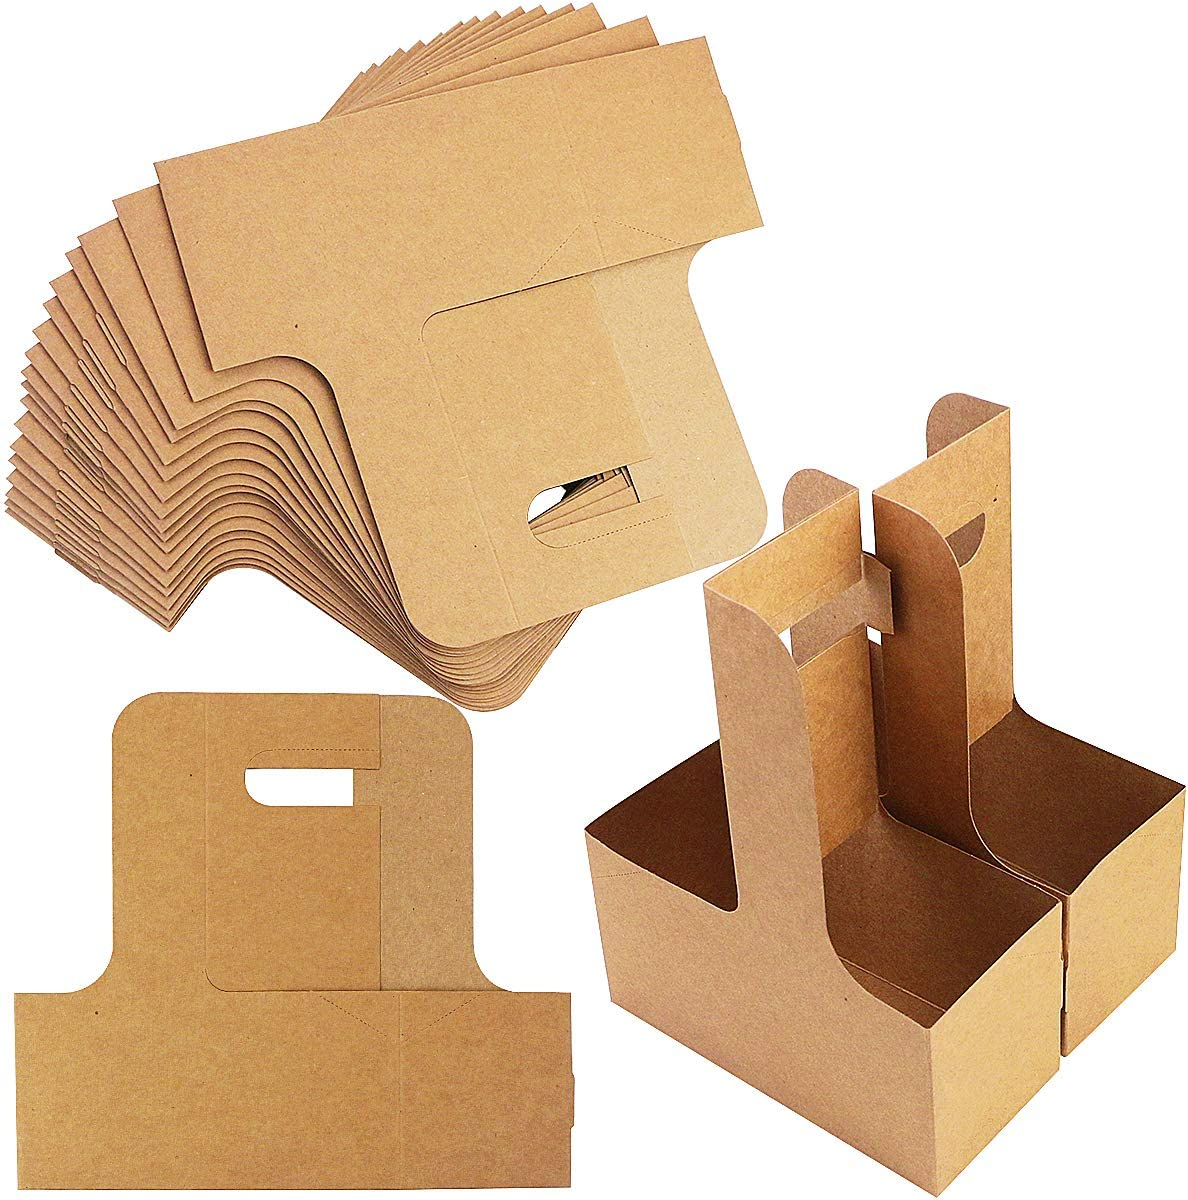 Pralb 20Pack 2 Cup Kraft Paperboard Small Drink Carrier with Convenient Handles,Professional Kraft Paperboard Drink Carrier with Handle, Hold 2 Cups,8.7